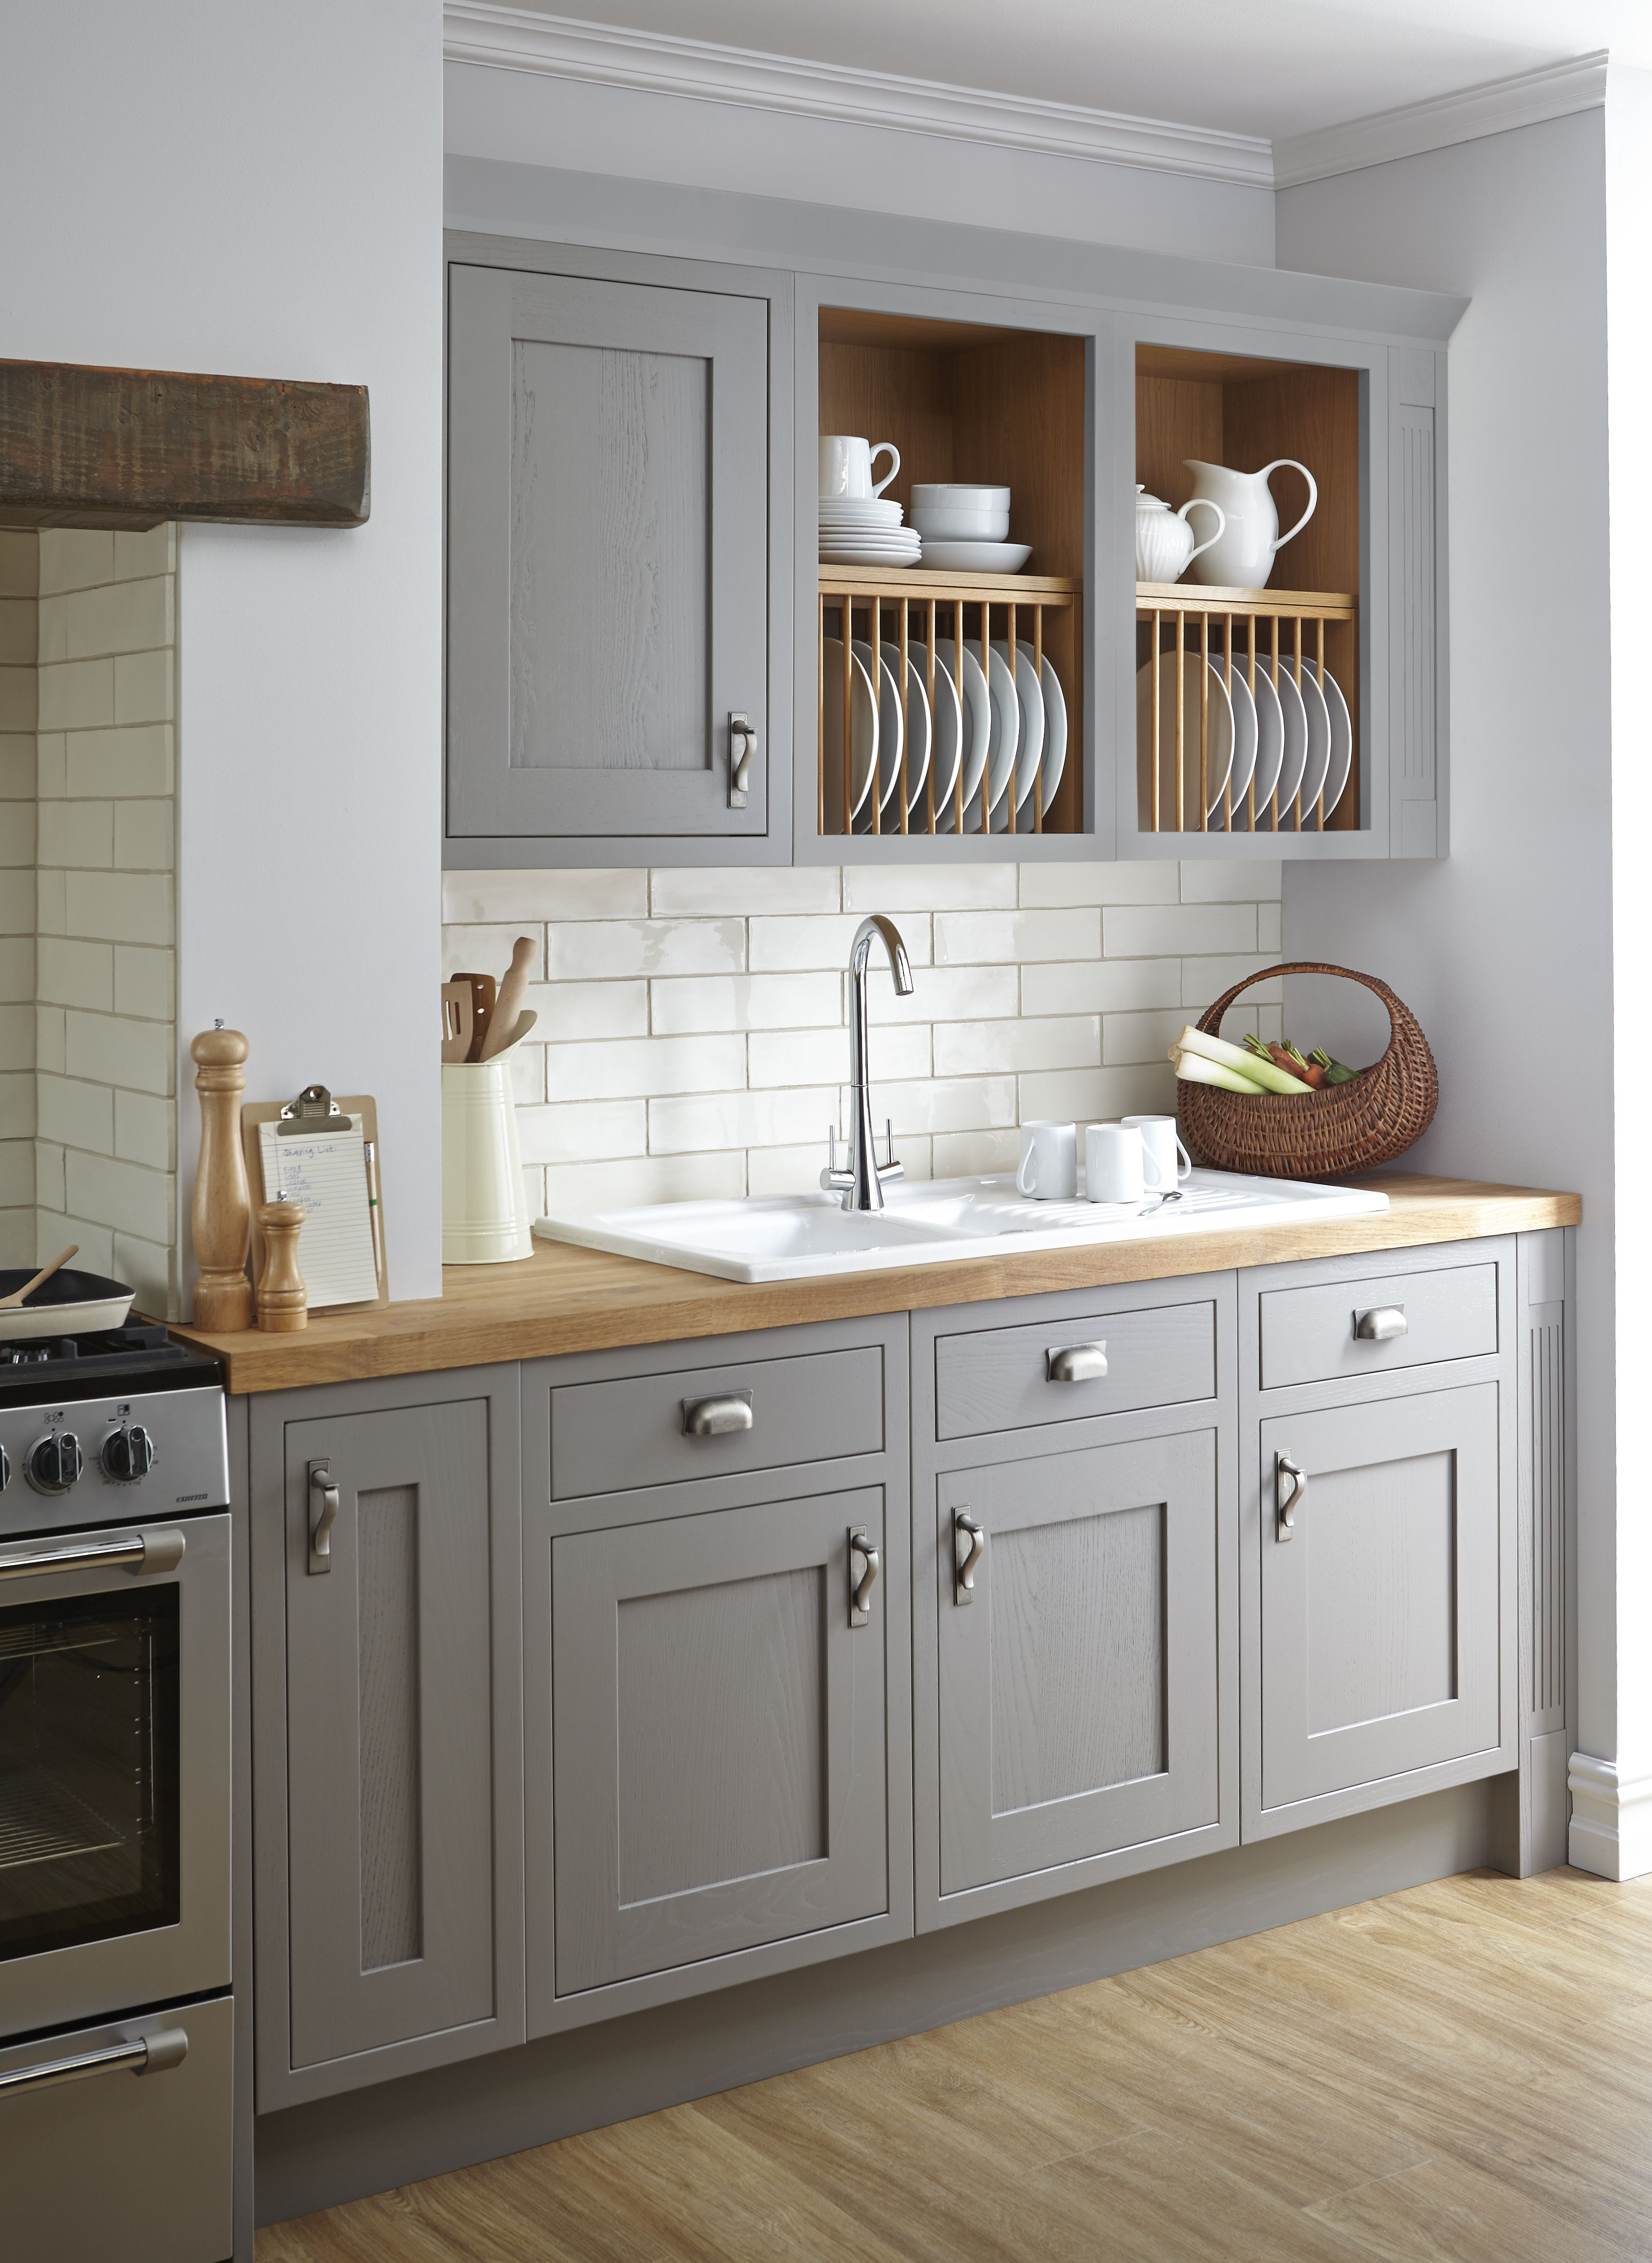 Best Kitchen Gallery: Pin By Mona Johnson On Kitchens Pinterest Woodwork Wood Working of Taupe Painted Kitchen Cabinet Colors on rachelxblog.com